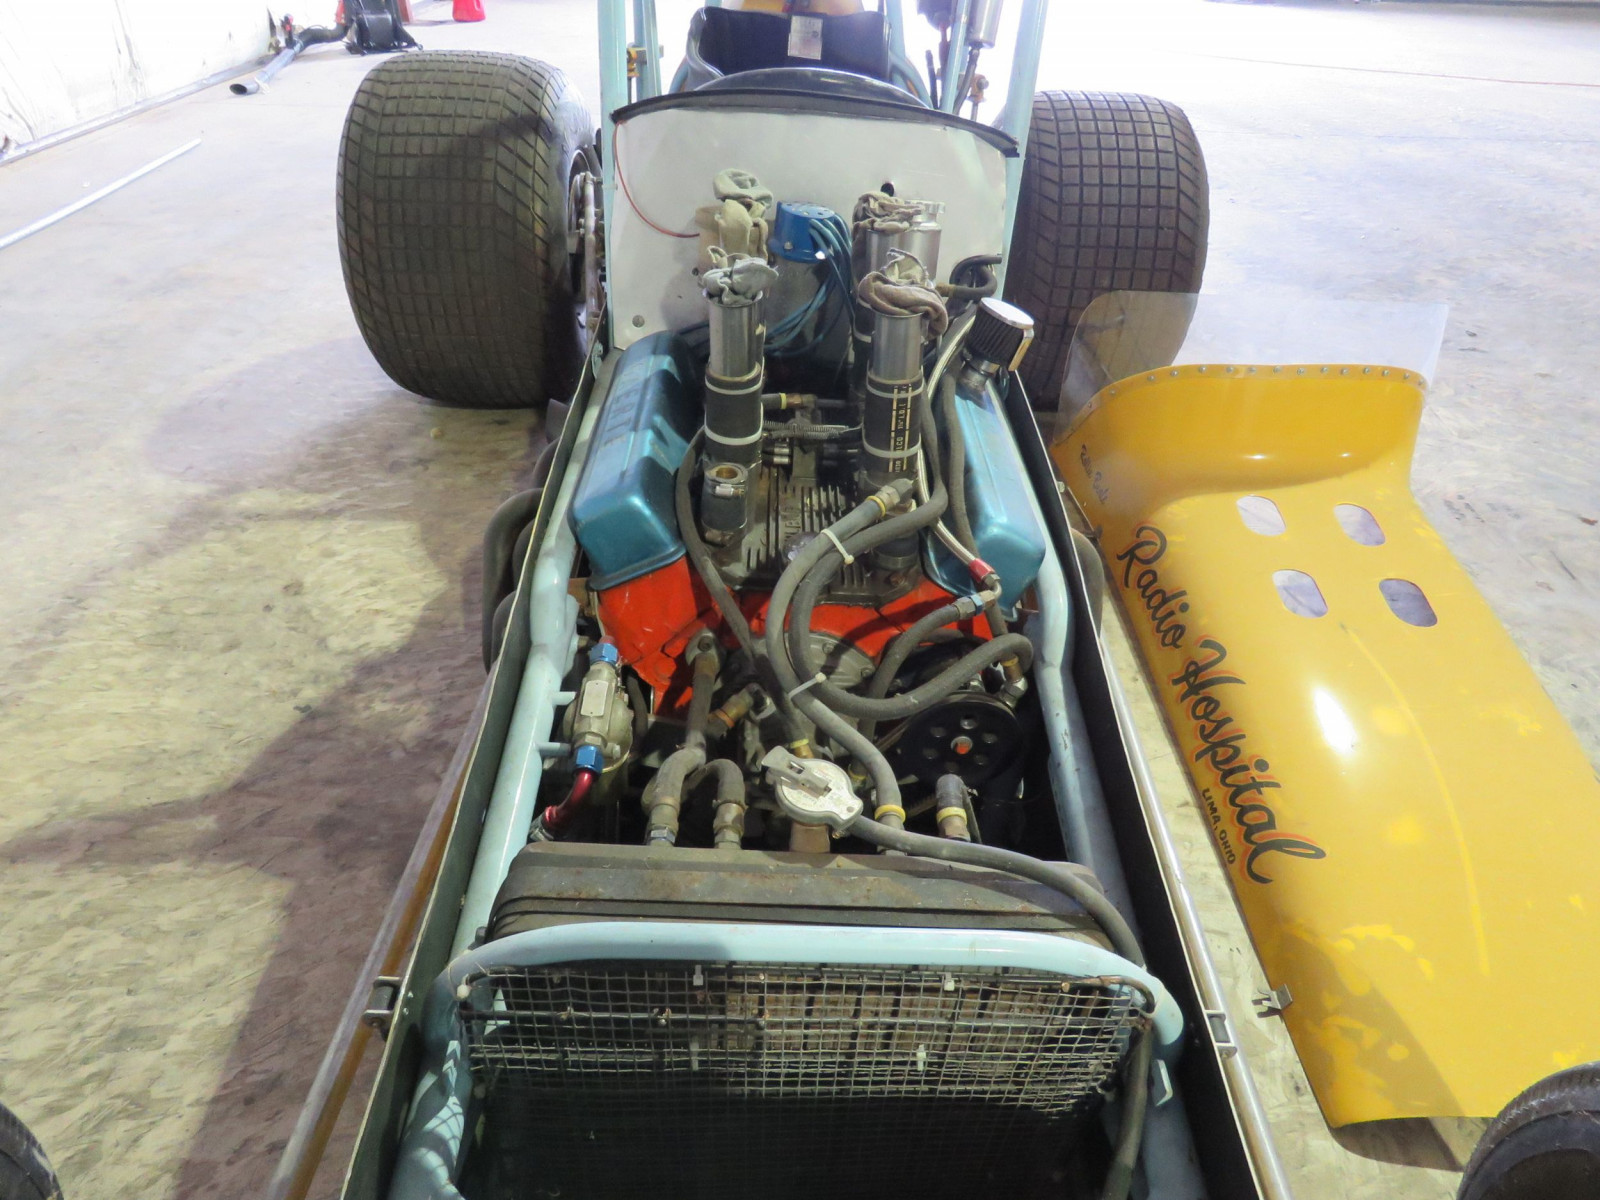 1972 fuel Injected Sprint Car - Image 11